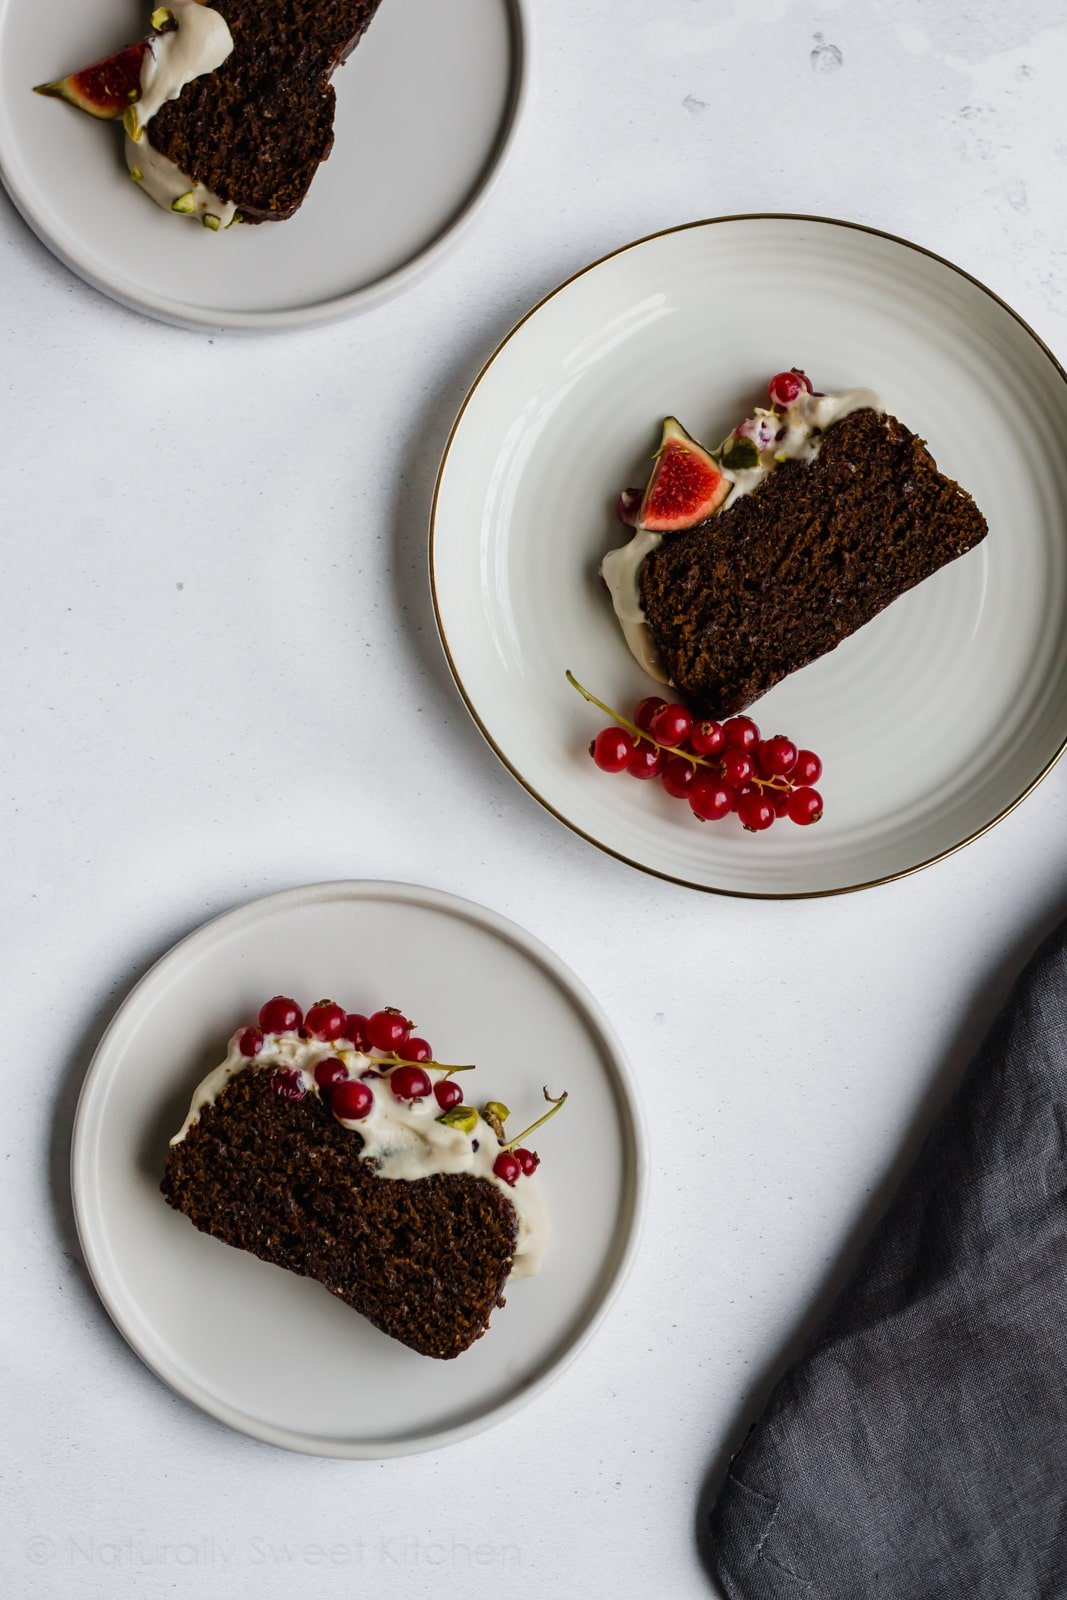 This easy gingerbread cake is made in a loaf tin and completely vegan. Topped with a cashew cream cheese frosting, winter fruit, and pistachios, this is the best Christmas cake recipe. Visit naturallysweetkitchen.com for the recipe and other refined sugar free cakes. #naturallysweetkitchen #refinedsugarfree #vegan #vegancake #gingerbread #gingerbreadcake #christmasrecipes